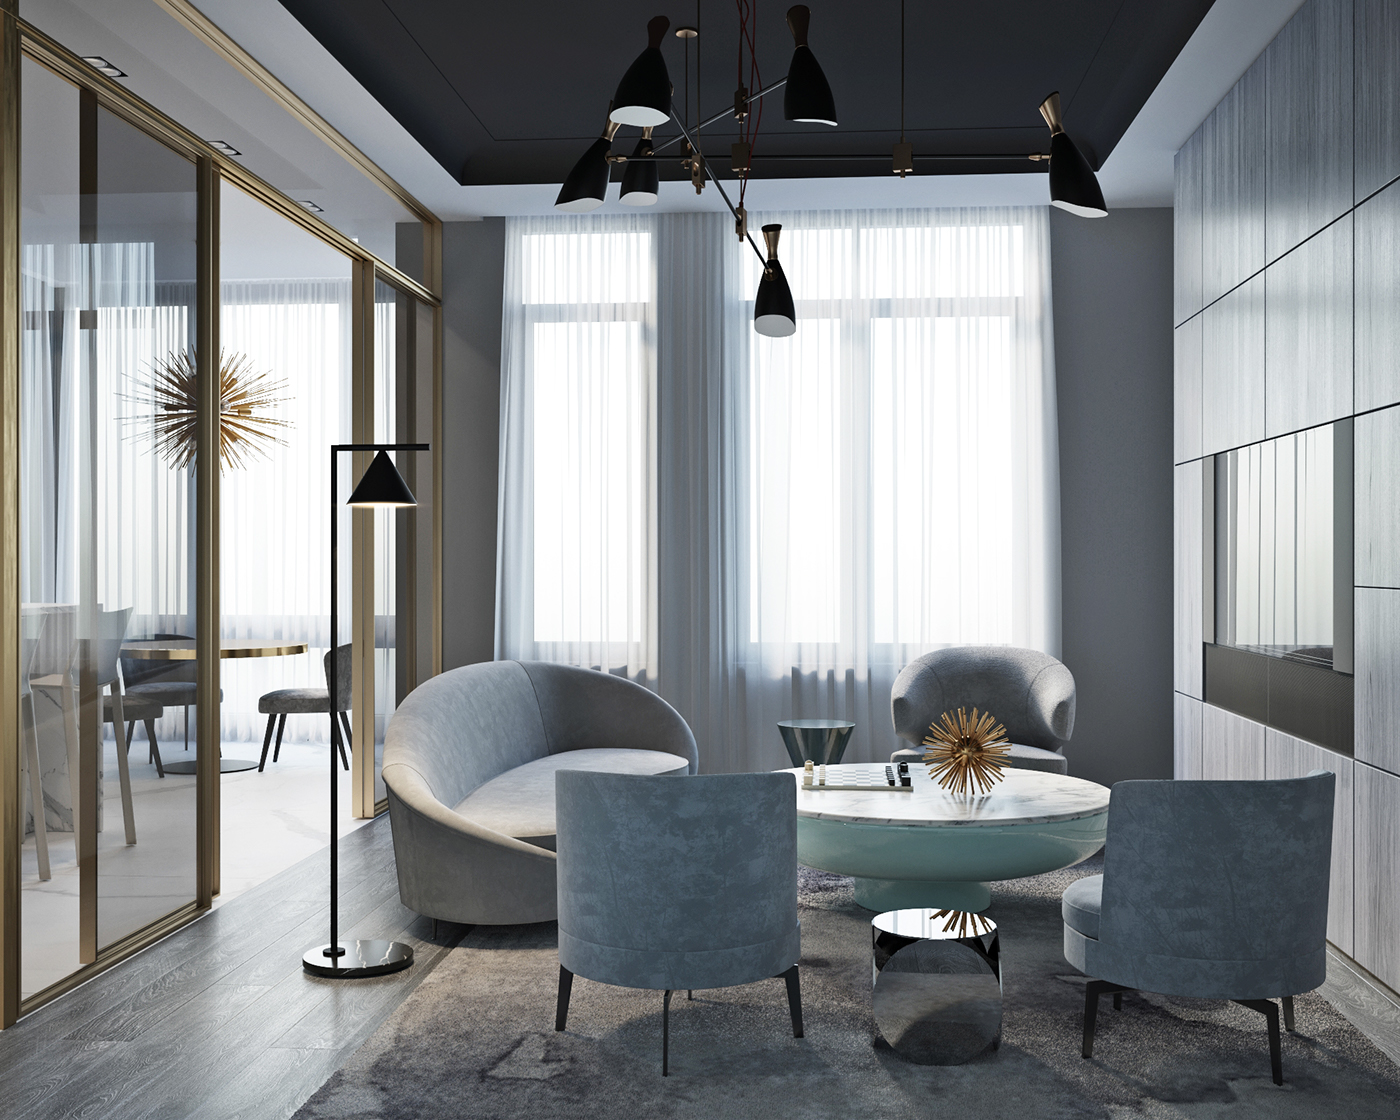 Shades Of Gray Modern Interior Design In Moscow! 4 shades of gray Shades Of Gray: Modern Interior Design In Moscow! Shades Of Gray Modern Interior Design In Moscow 4